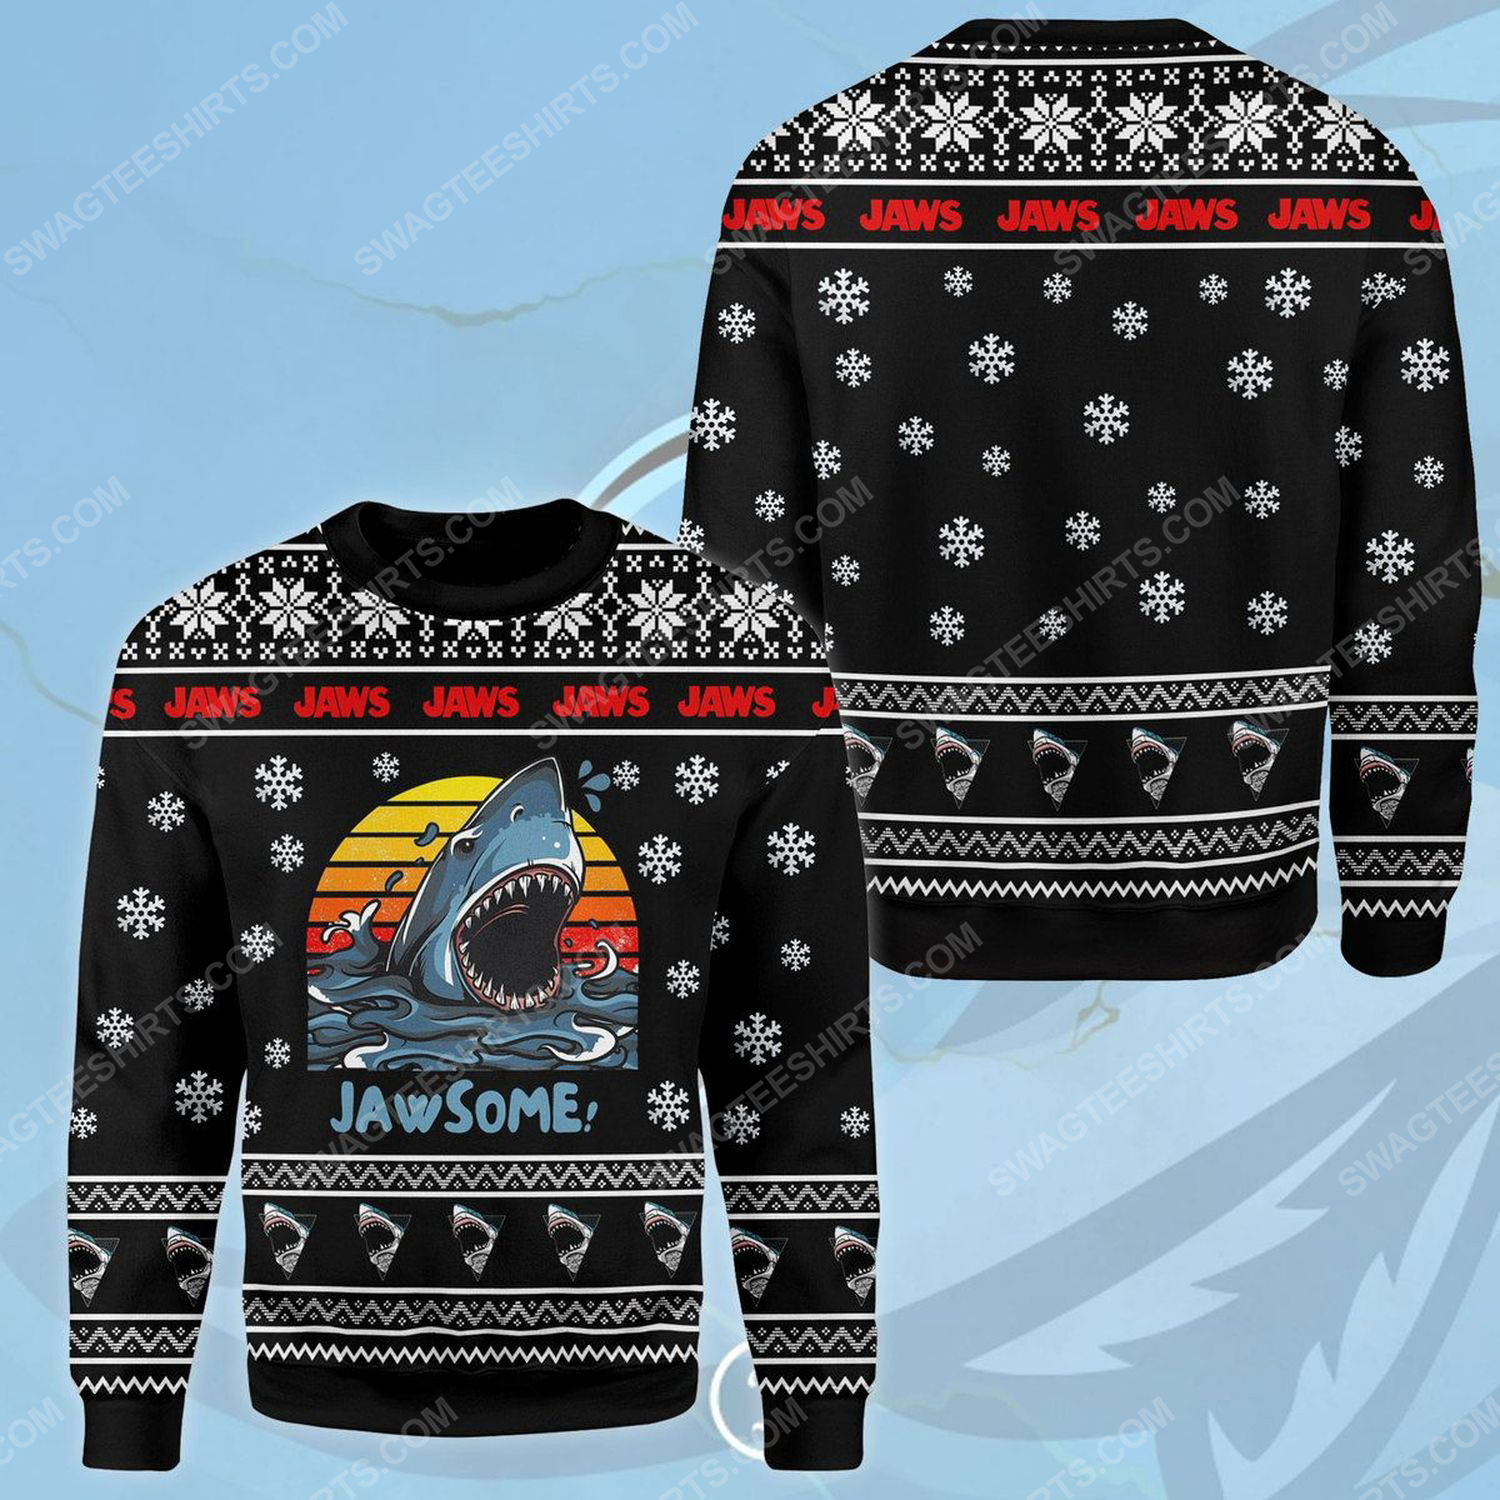 Vintage jaws ugly christmas sweater